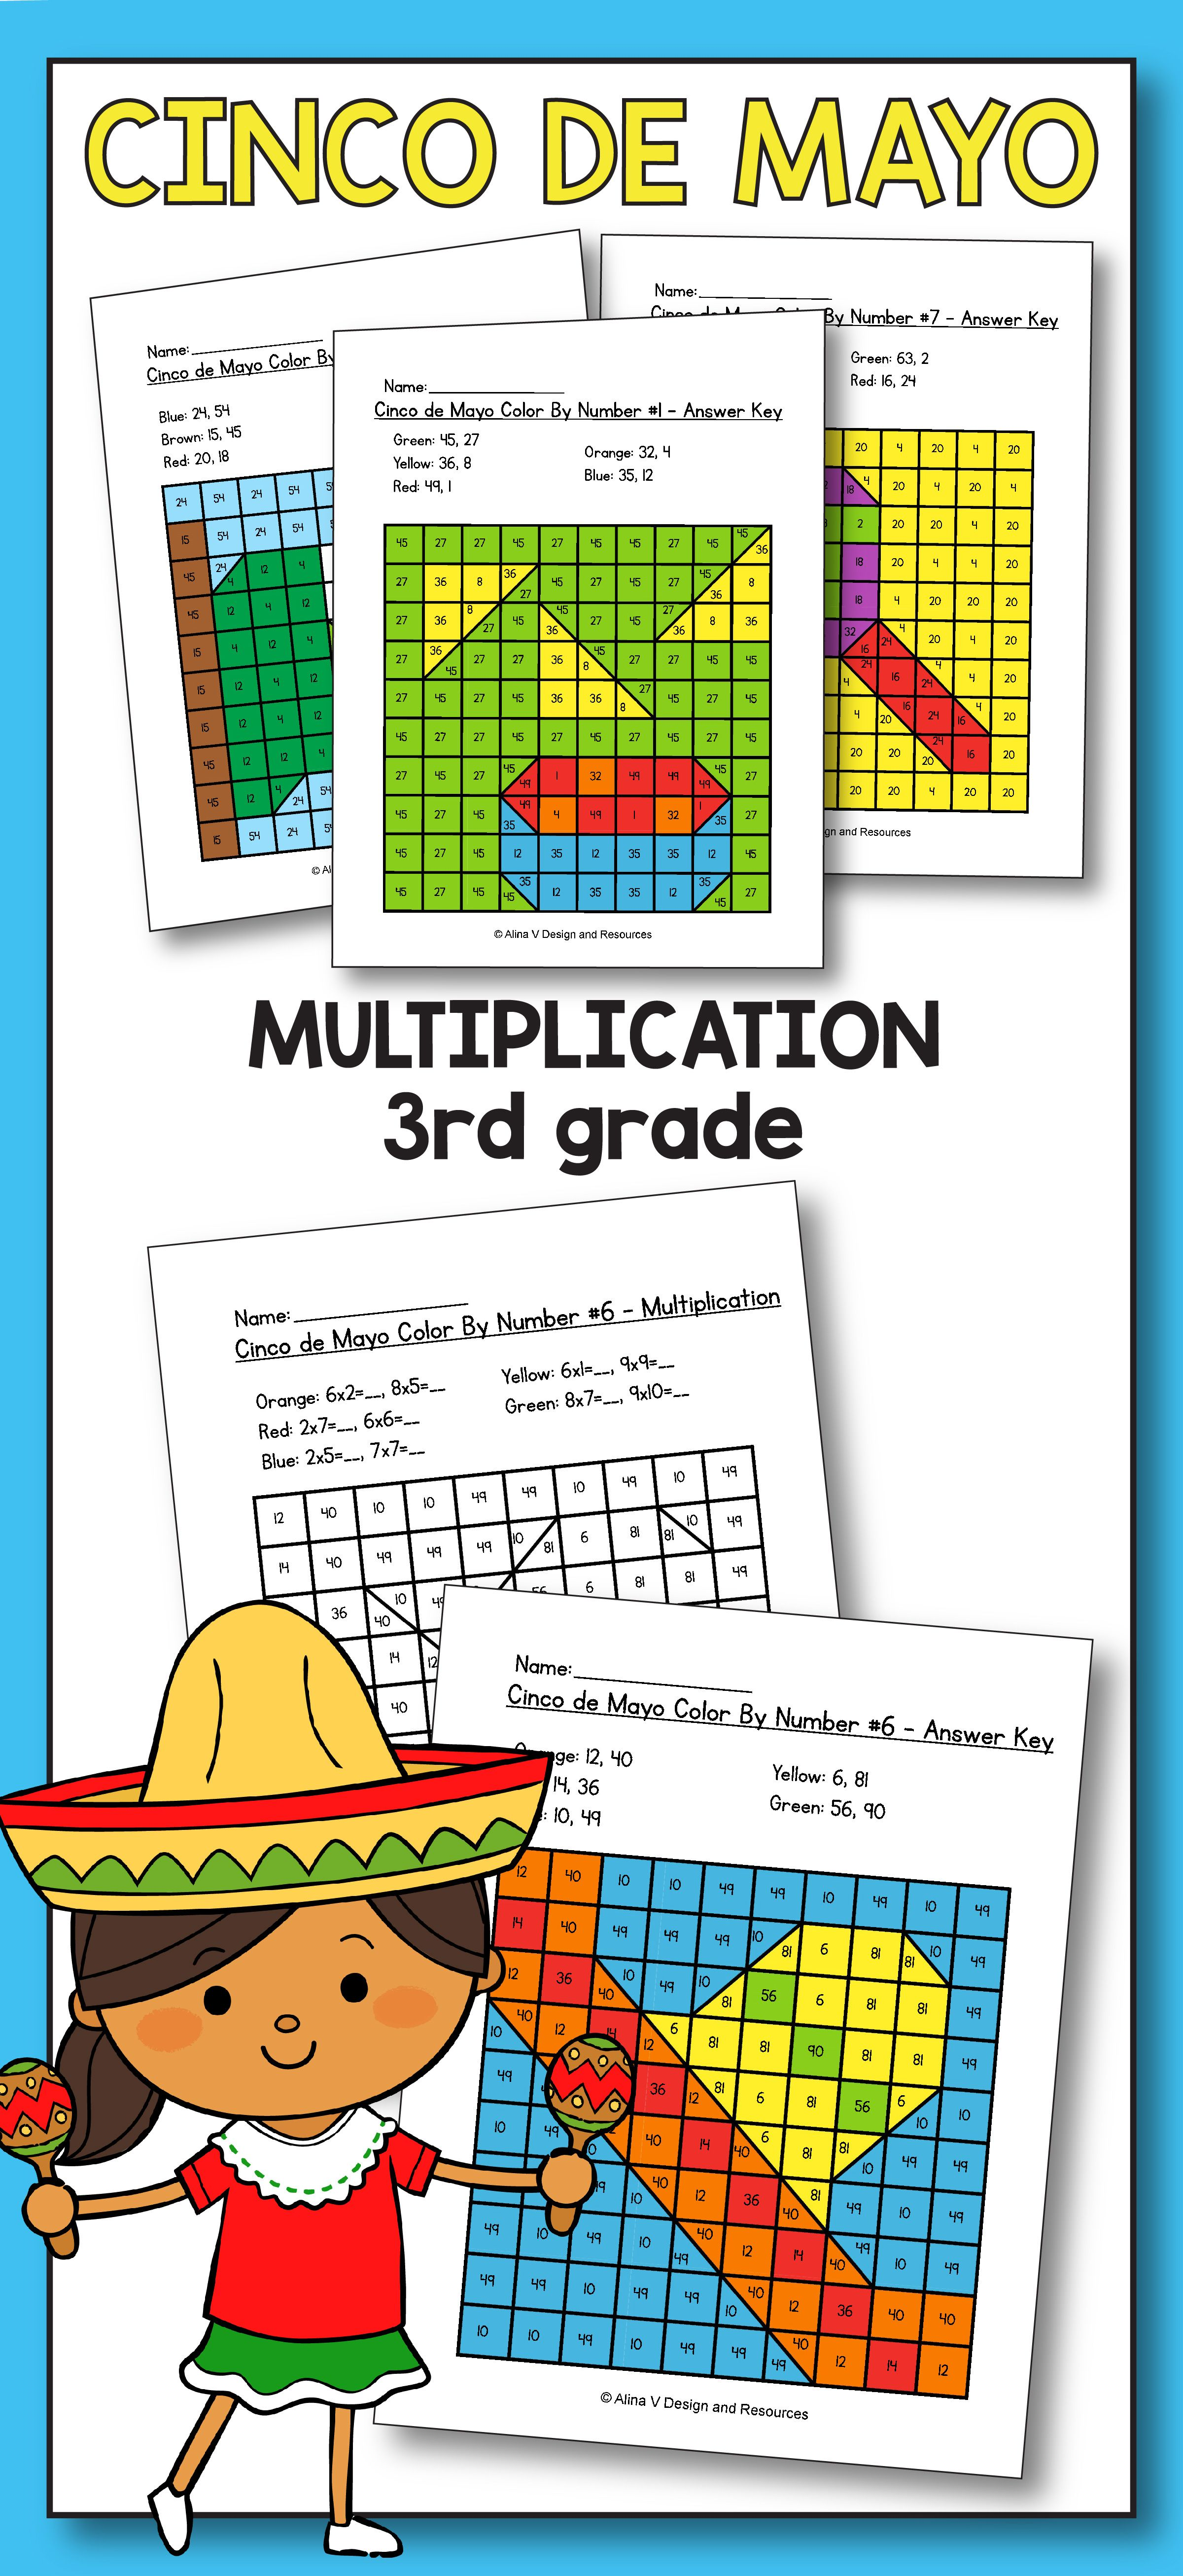 hight resolution of Day of the Dead Activities for 3rd Grade fun multiplication worksheets    Elementary math lessons